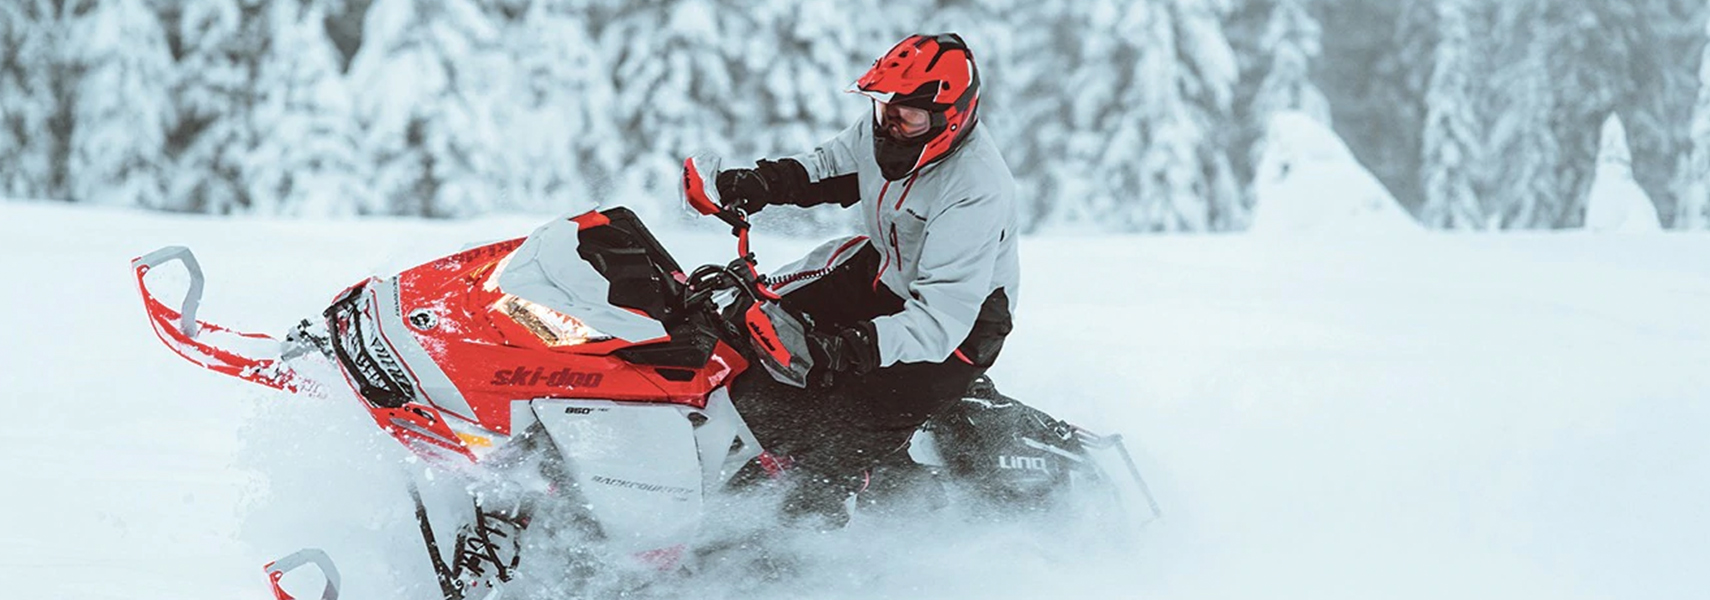 Ski-Doo - 2021 Backcountry